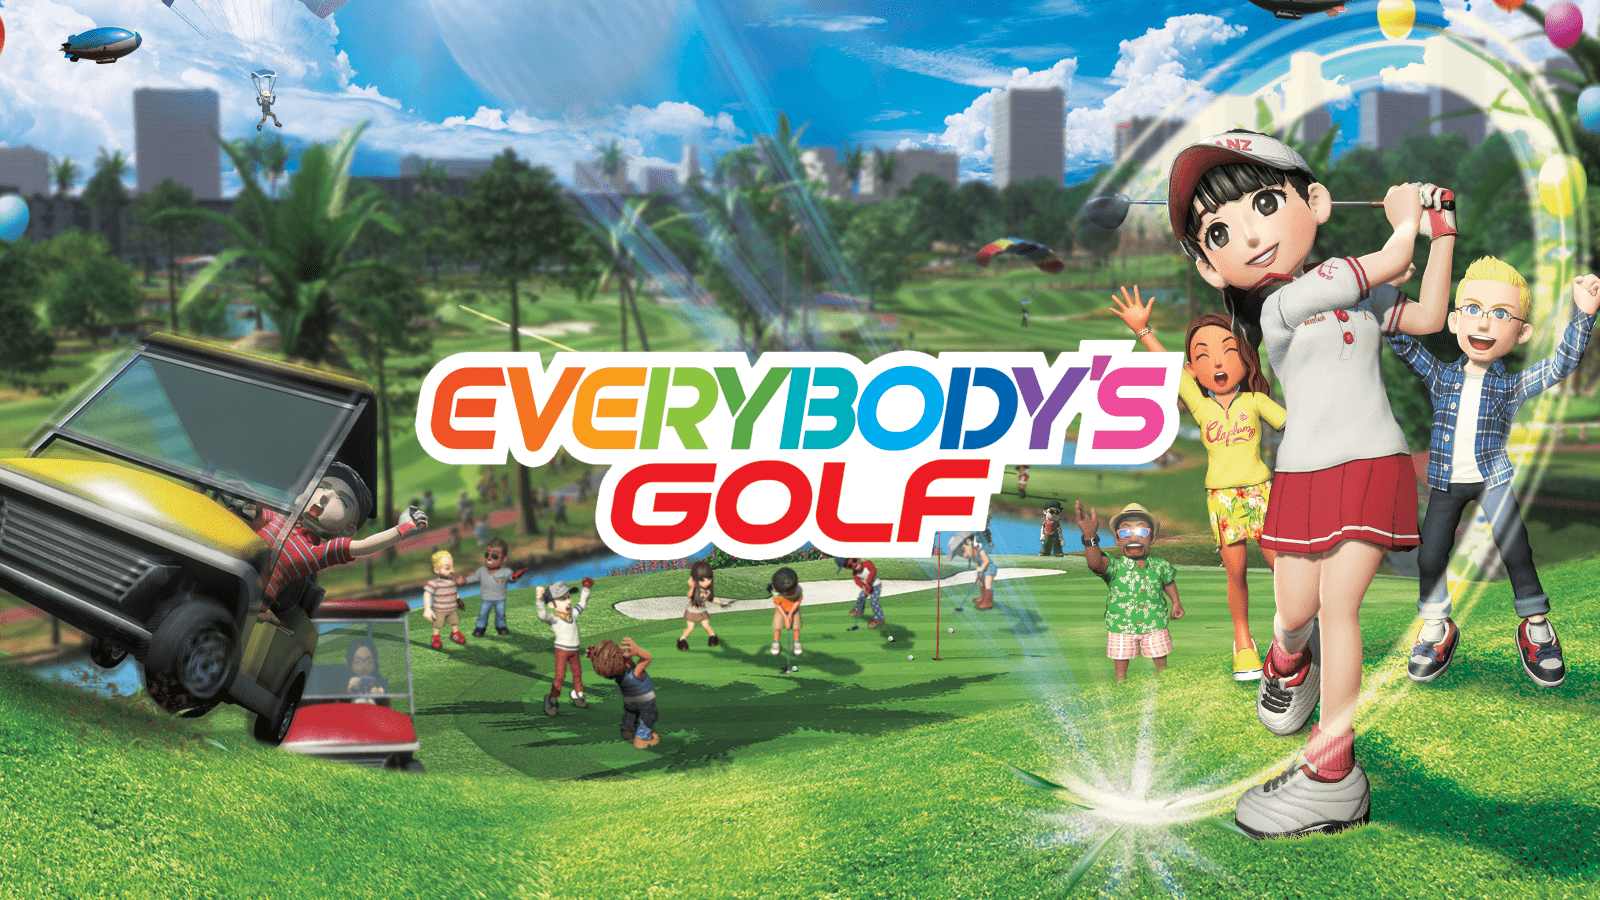 everybodys golf listing thumb 01 ps4 us 10apr17